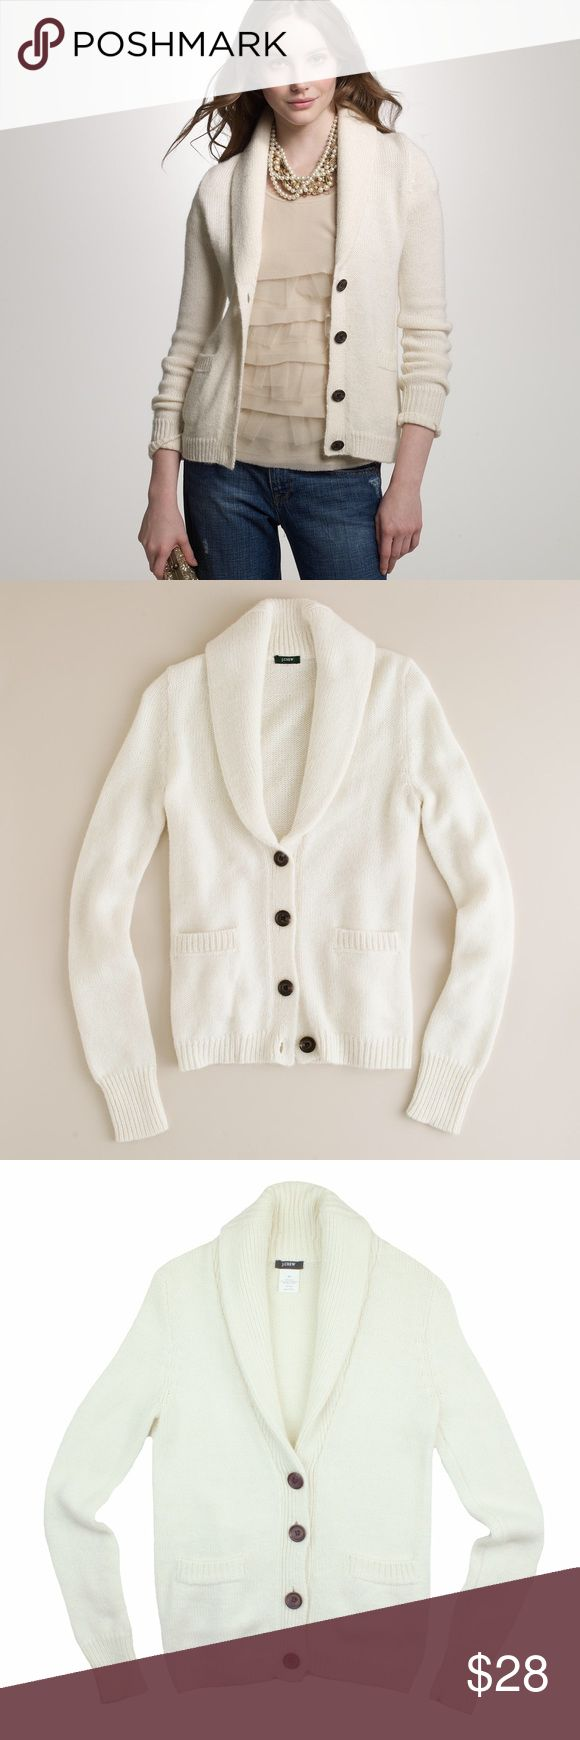 "JCREW Ivory Nonno Shawl Collar Cardigan Sweater Great condition! This ivory nonno shawl collar Cardigan sweater from JCREW features button closures, front pockets and a shawl collar neckline. Made of an alpaca blend. Measures: bust: 34"", total length: 23"", sleeves: 26"" J. Crew Sweaters Cardigans"